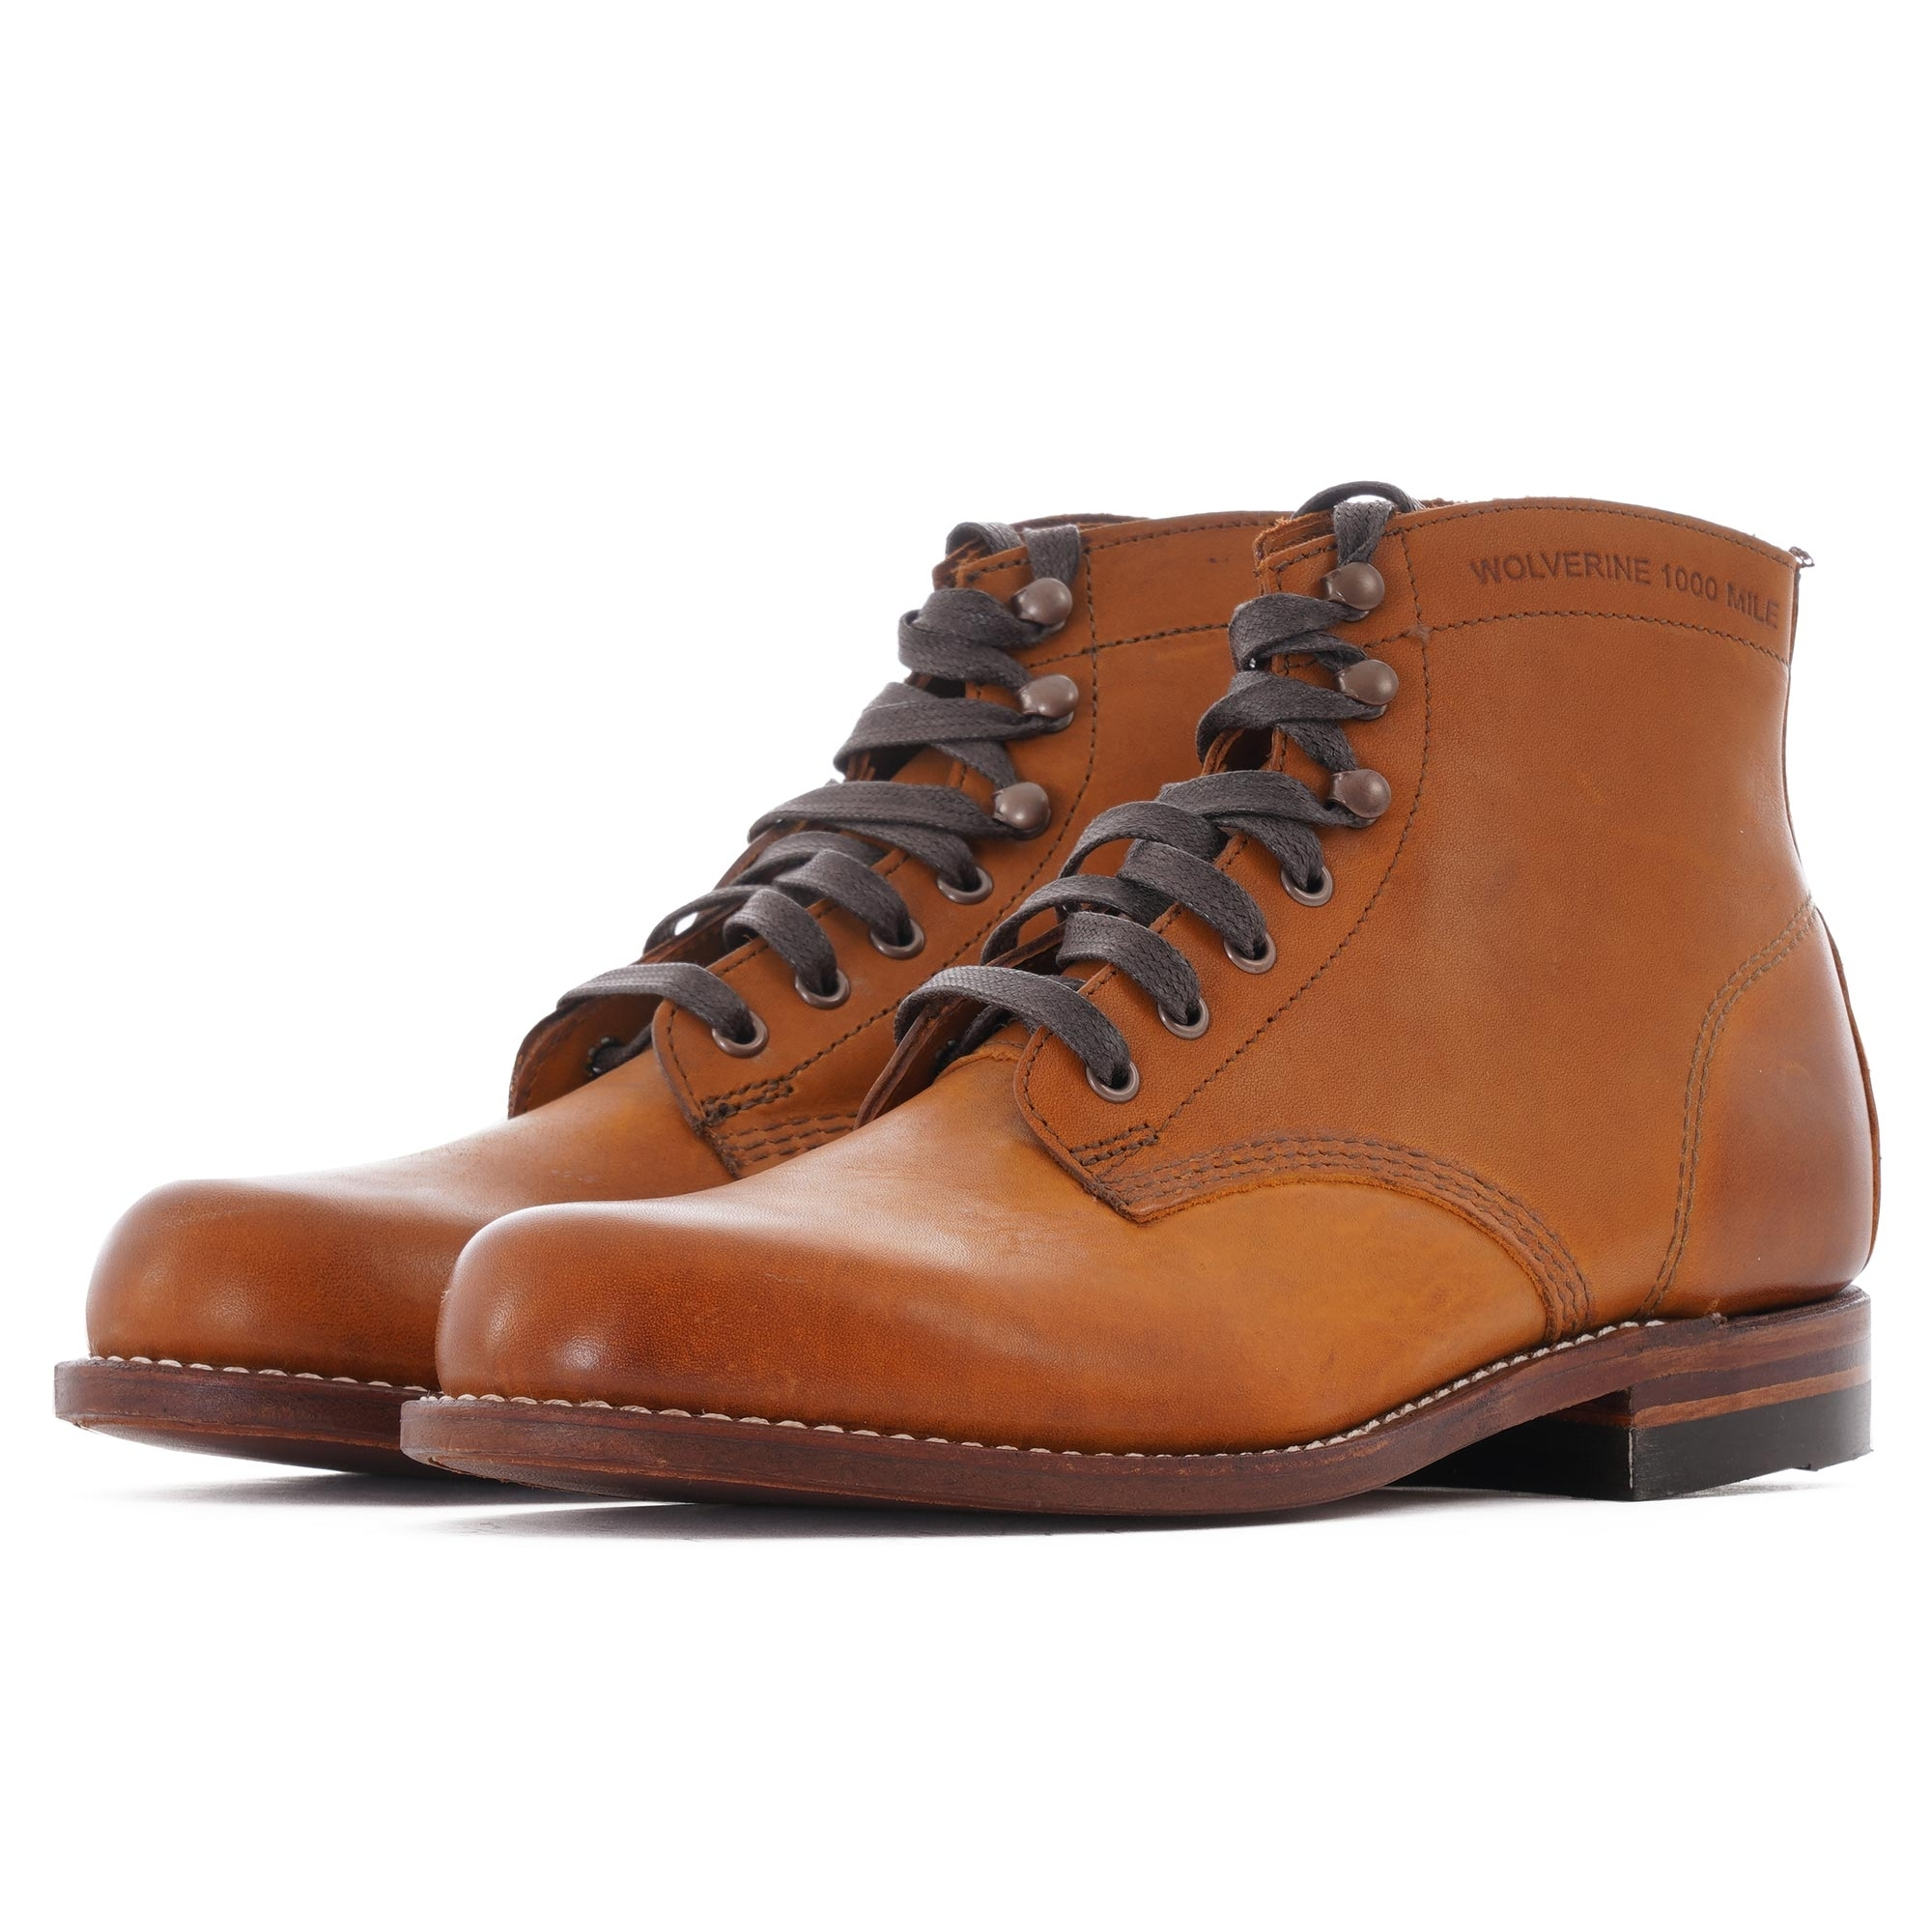 6990cf5a61b Wolverine Original 1000 Mile Boot - Tan